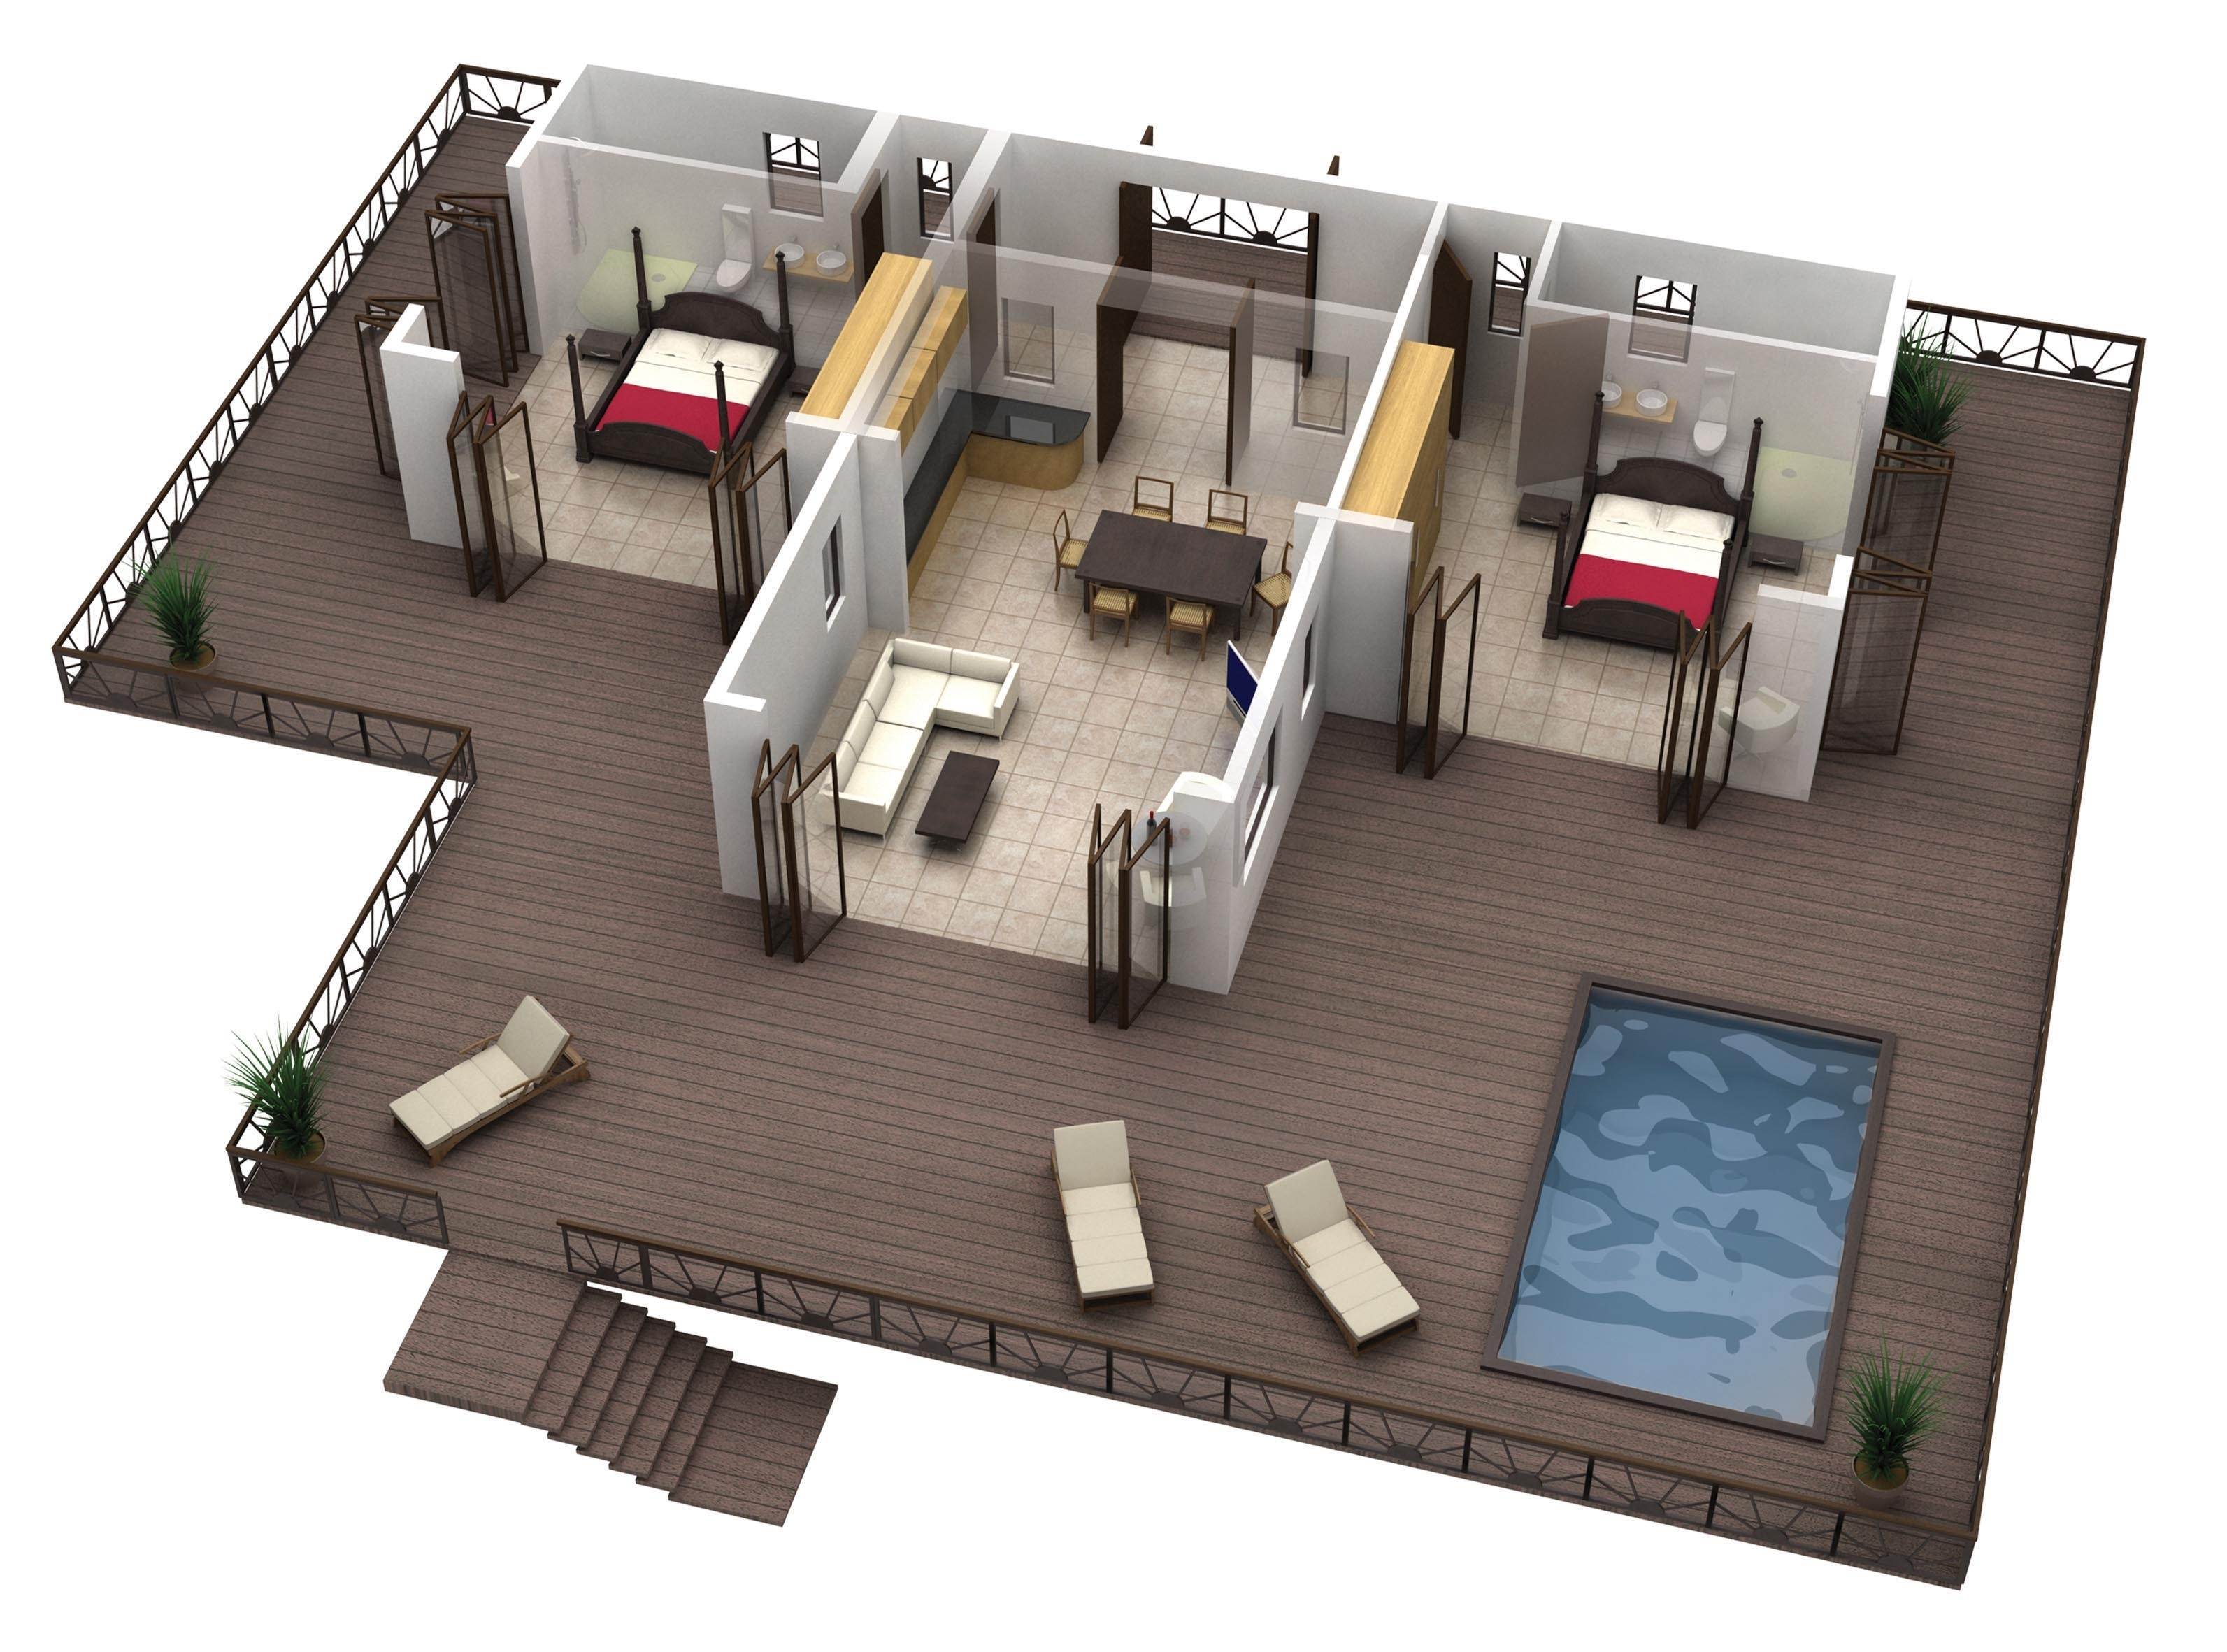 Lovely Modern Designs For Apartment Bedrooms With Black Closet in Best Layout For Garden Vista Apartments Design Ideas